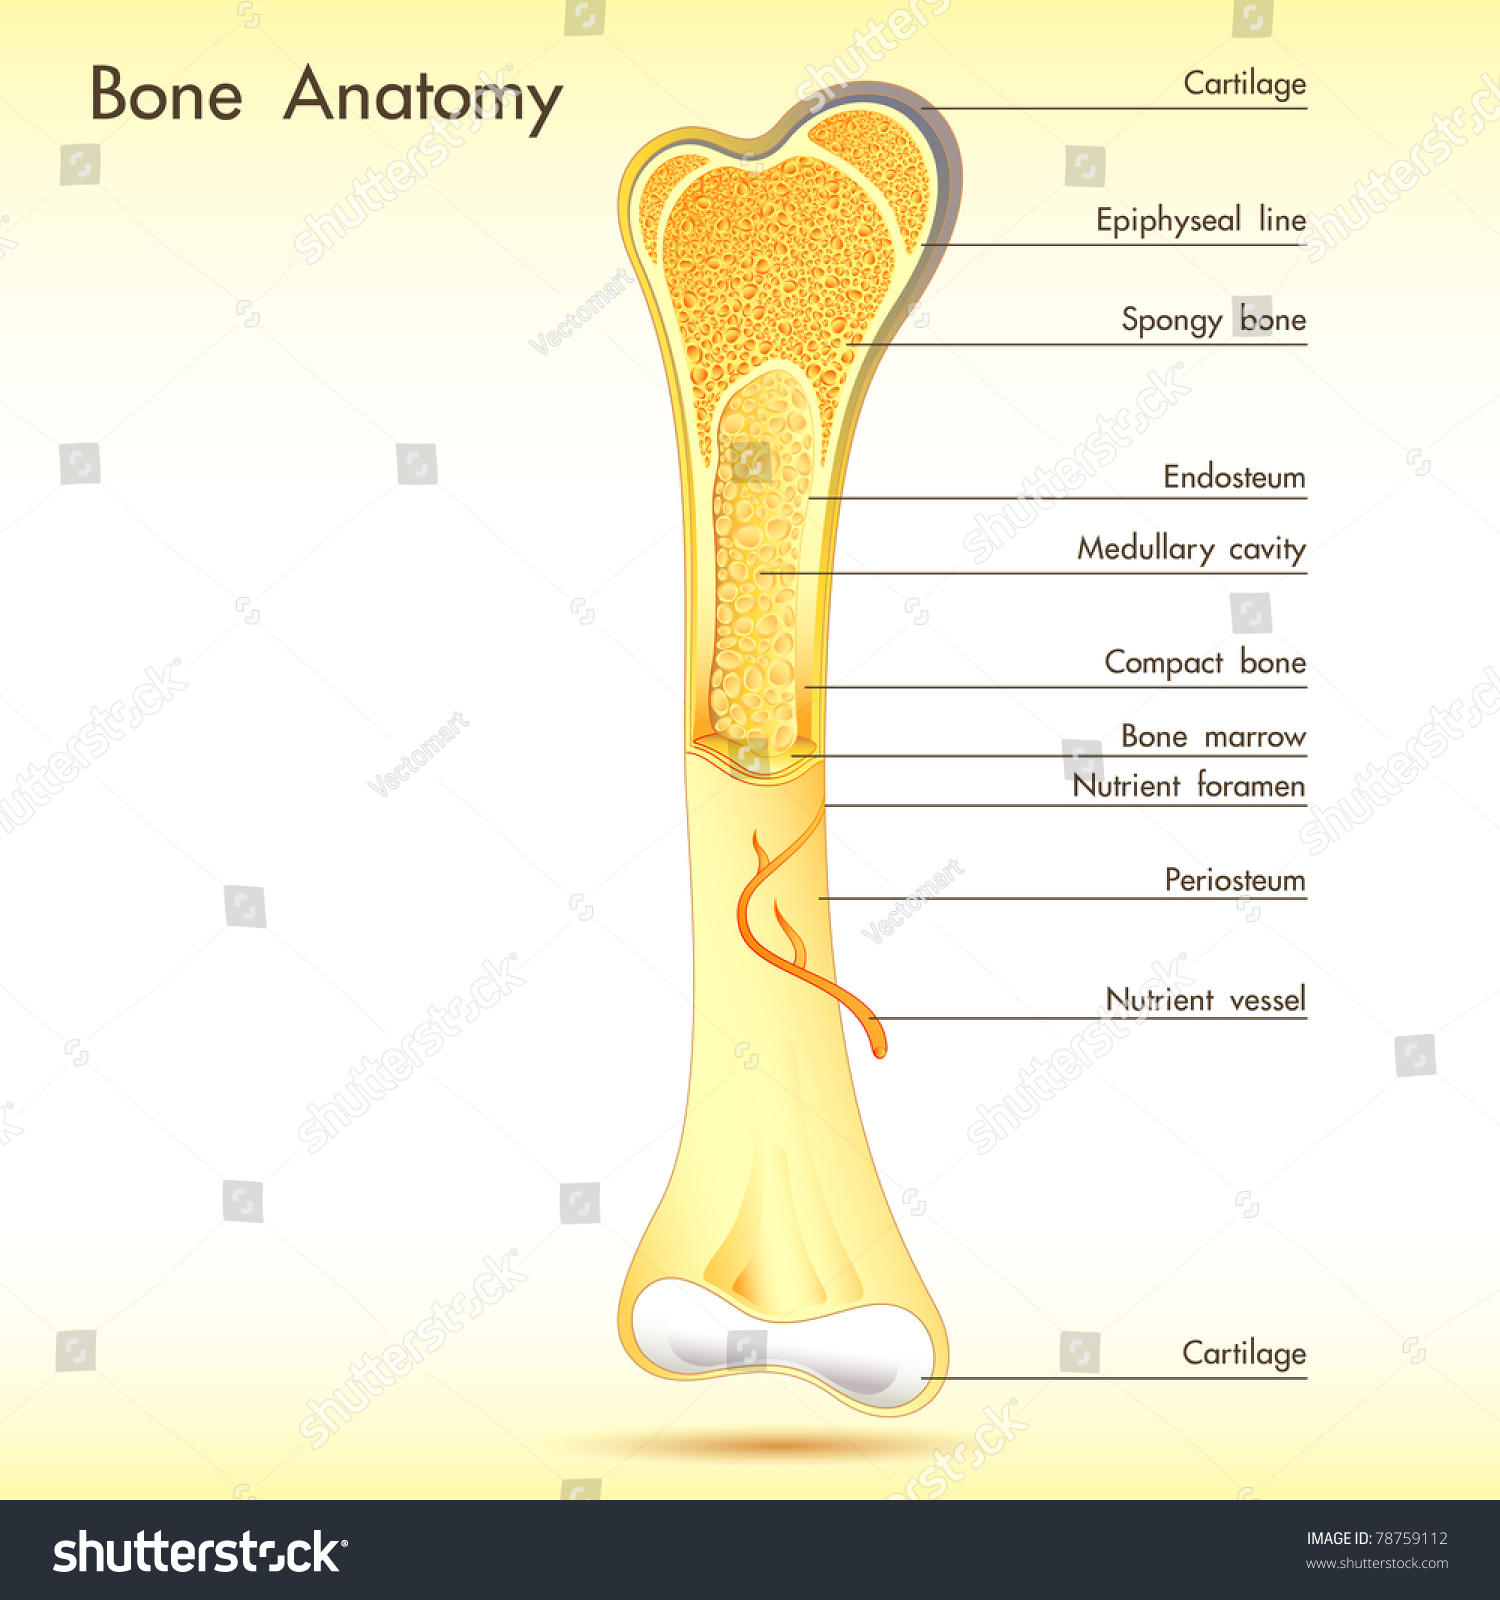 Illustration Anatomy Bone Label On Abstract Stock Vector (Royalty ...